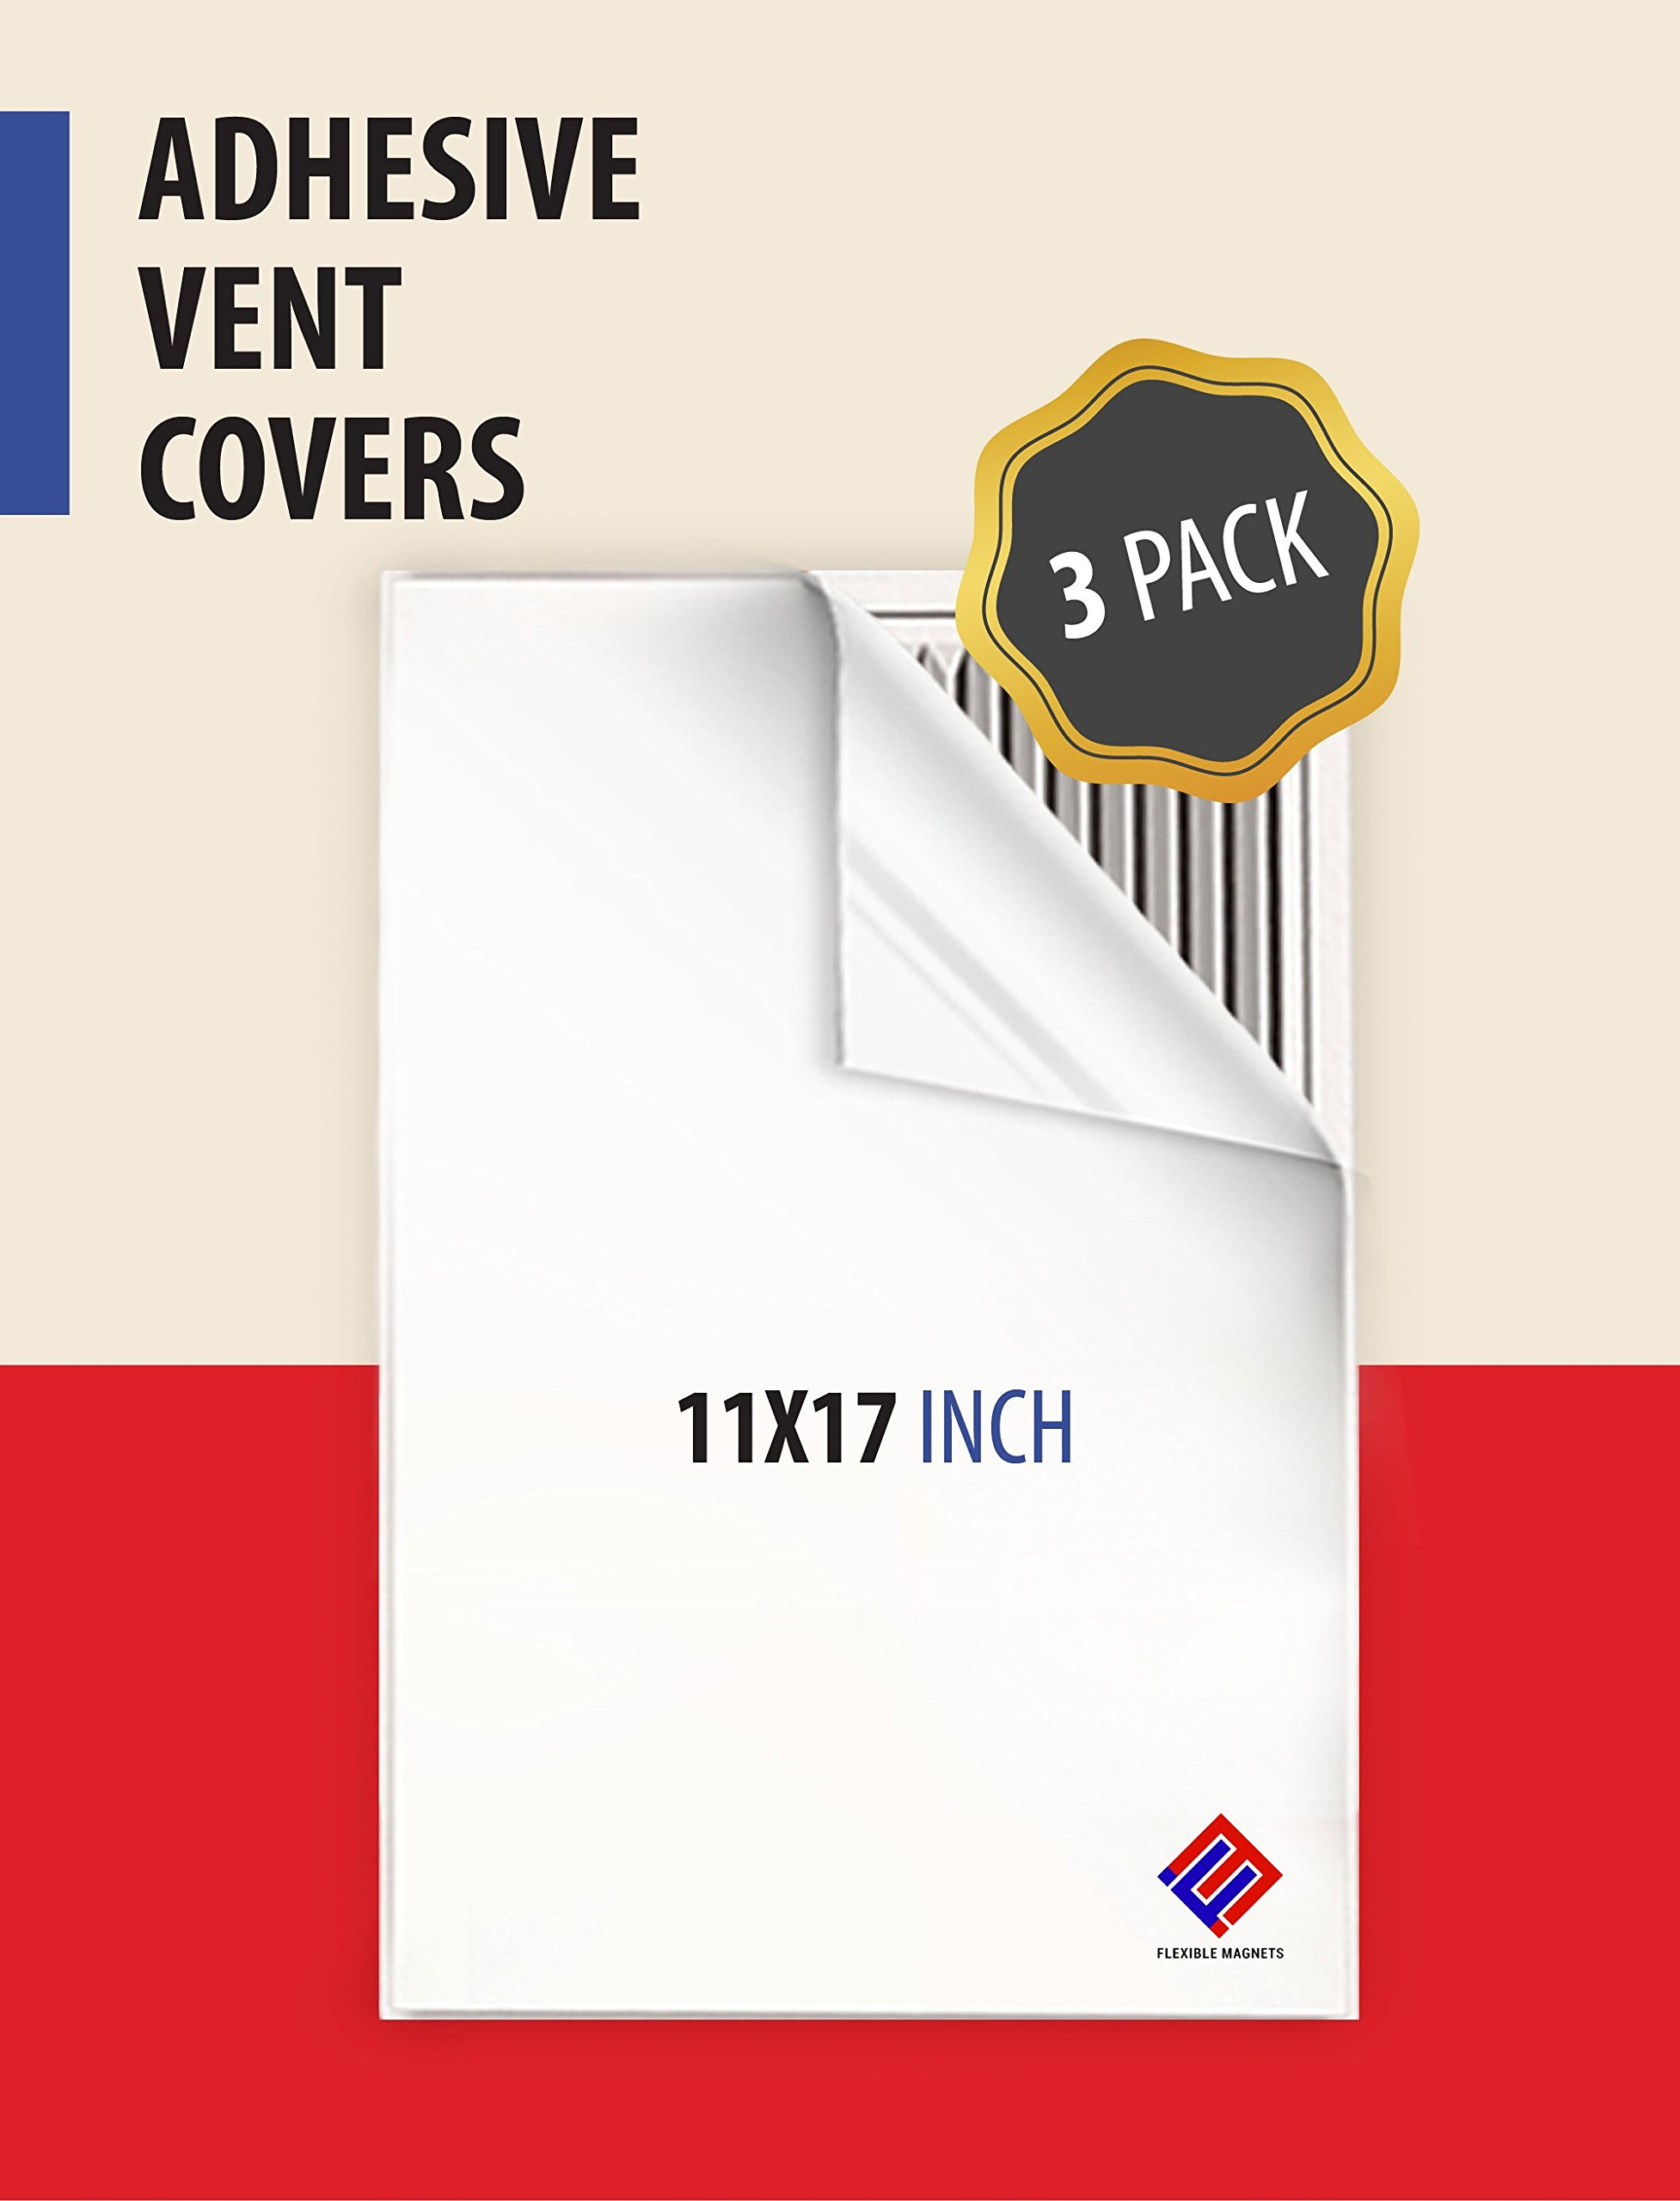 Register VENT COVERS Self Adhesive Peel & Stick 11 x 17 inches. For Air Registers, RV, Home HVAC, AC And Furnace Vents (3)